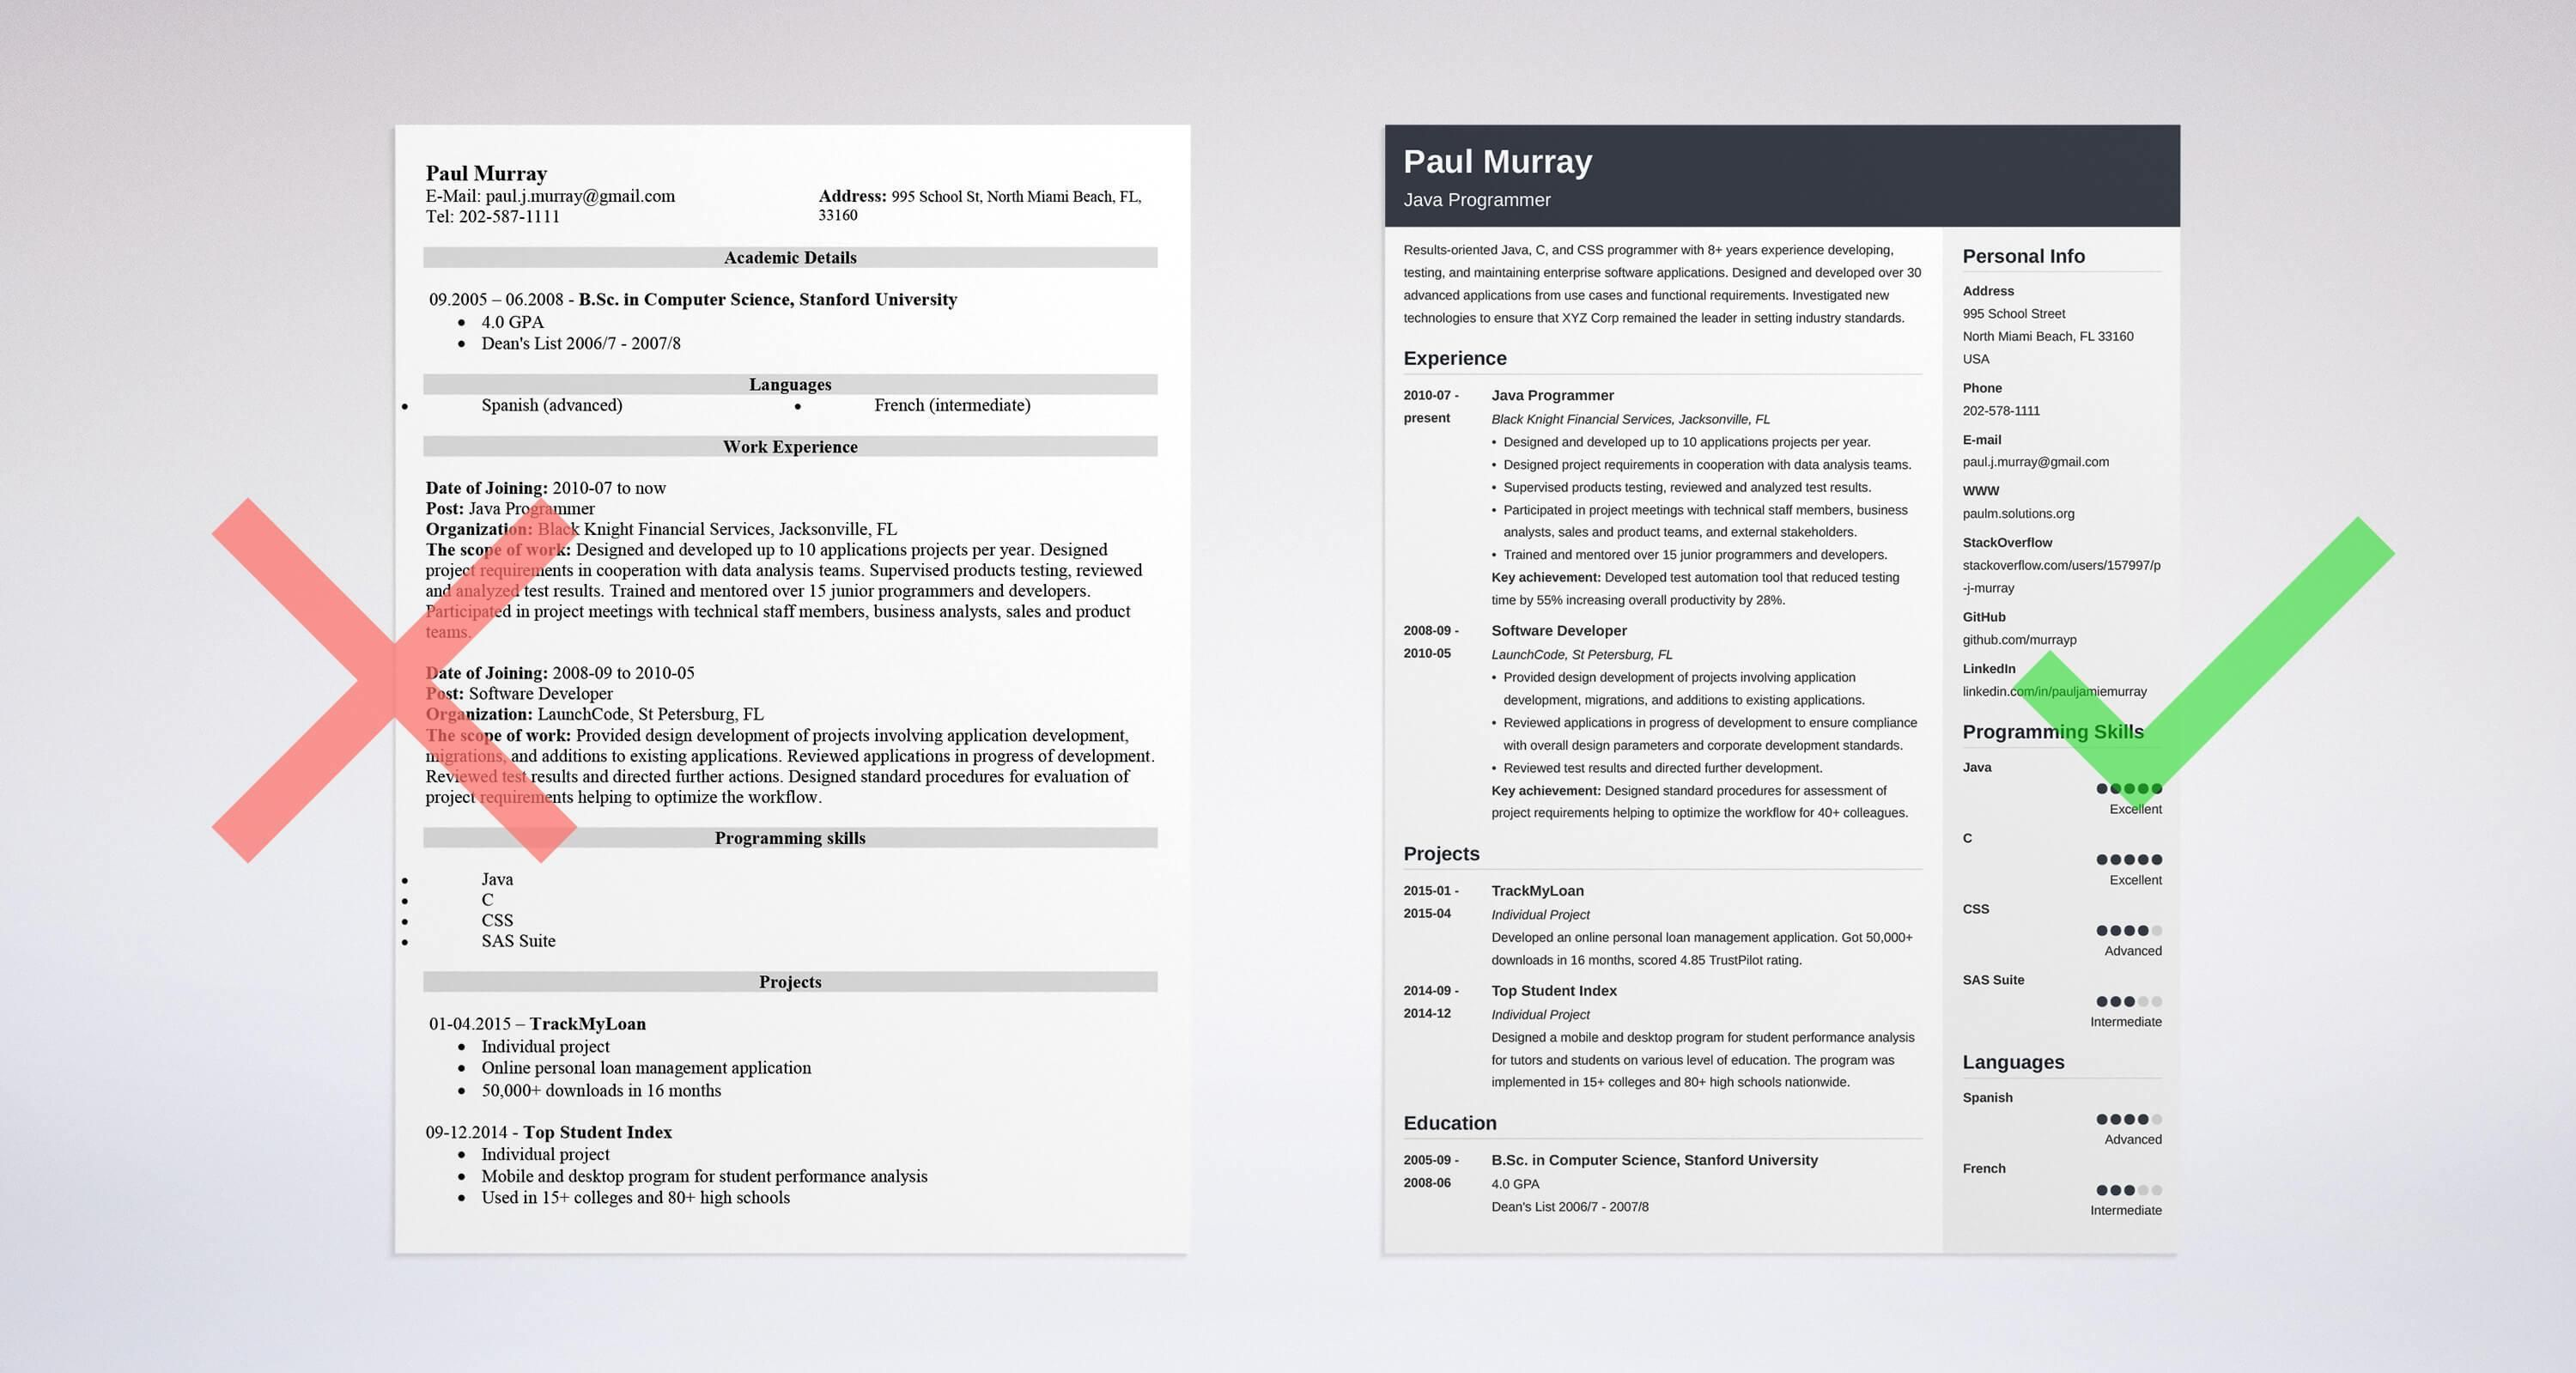 resume Tips For A Great Resume resume dos and donts 50 tips advice on building great resumes resumes